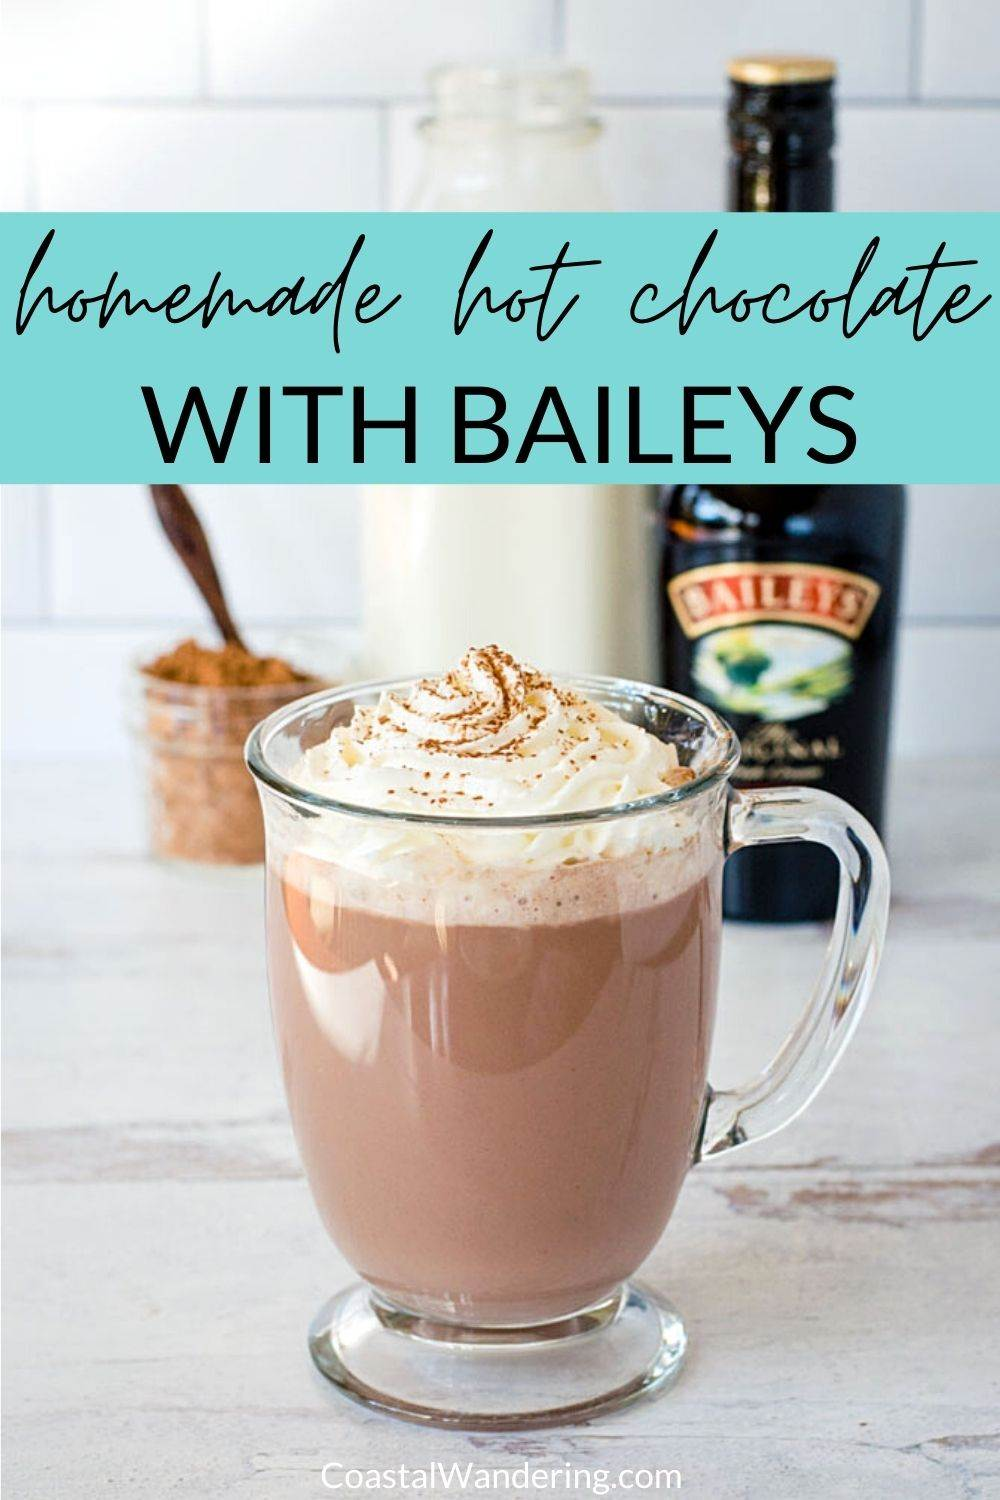 Hot Chocolate With Baileys To Warm You Up